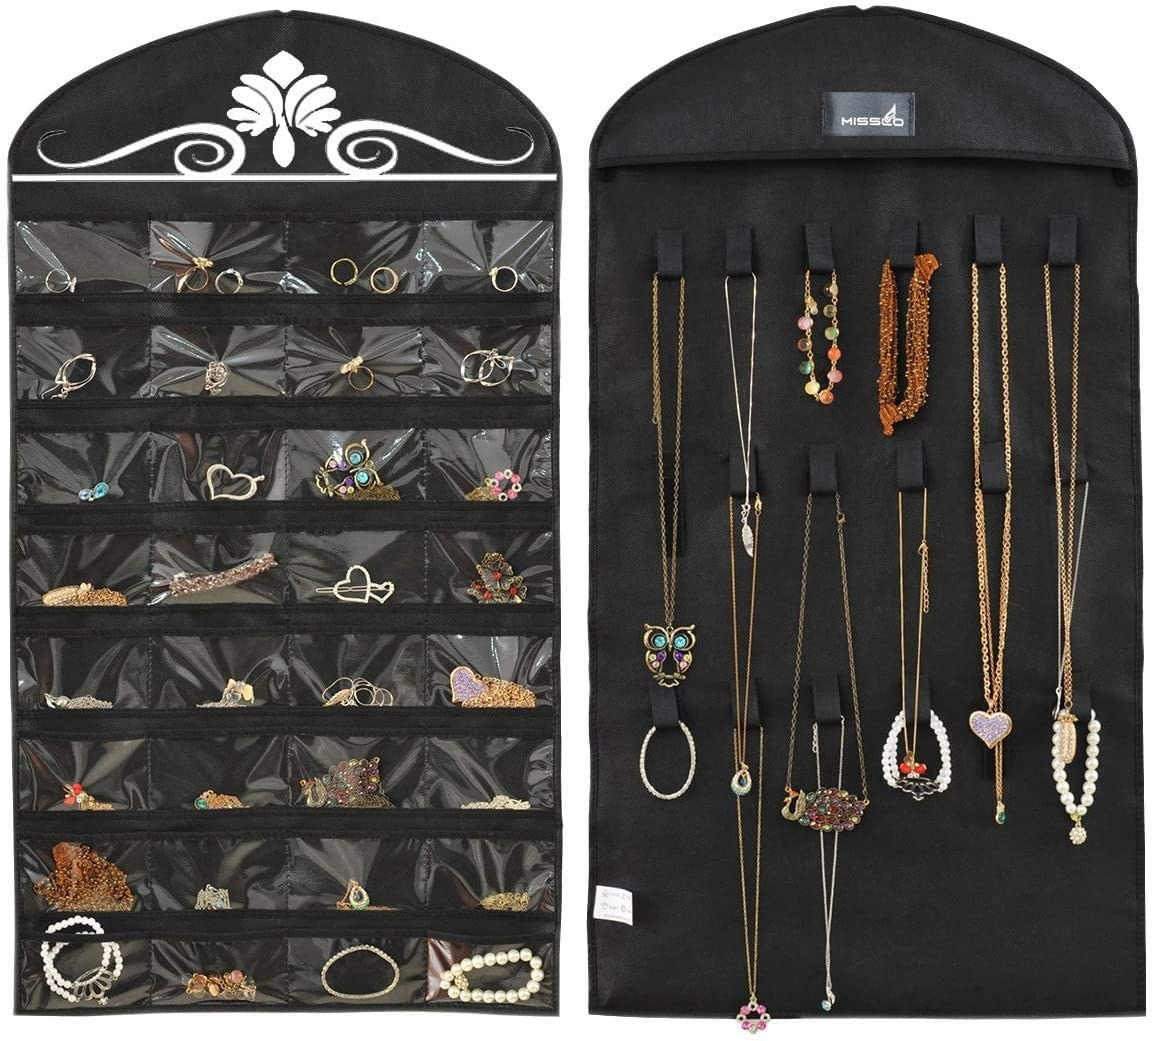 The two sided jewellery hanger which has pockets for earrings, bracelets and rings, and the other side has room to hang necklaces